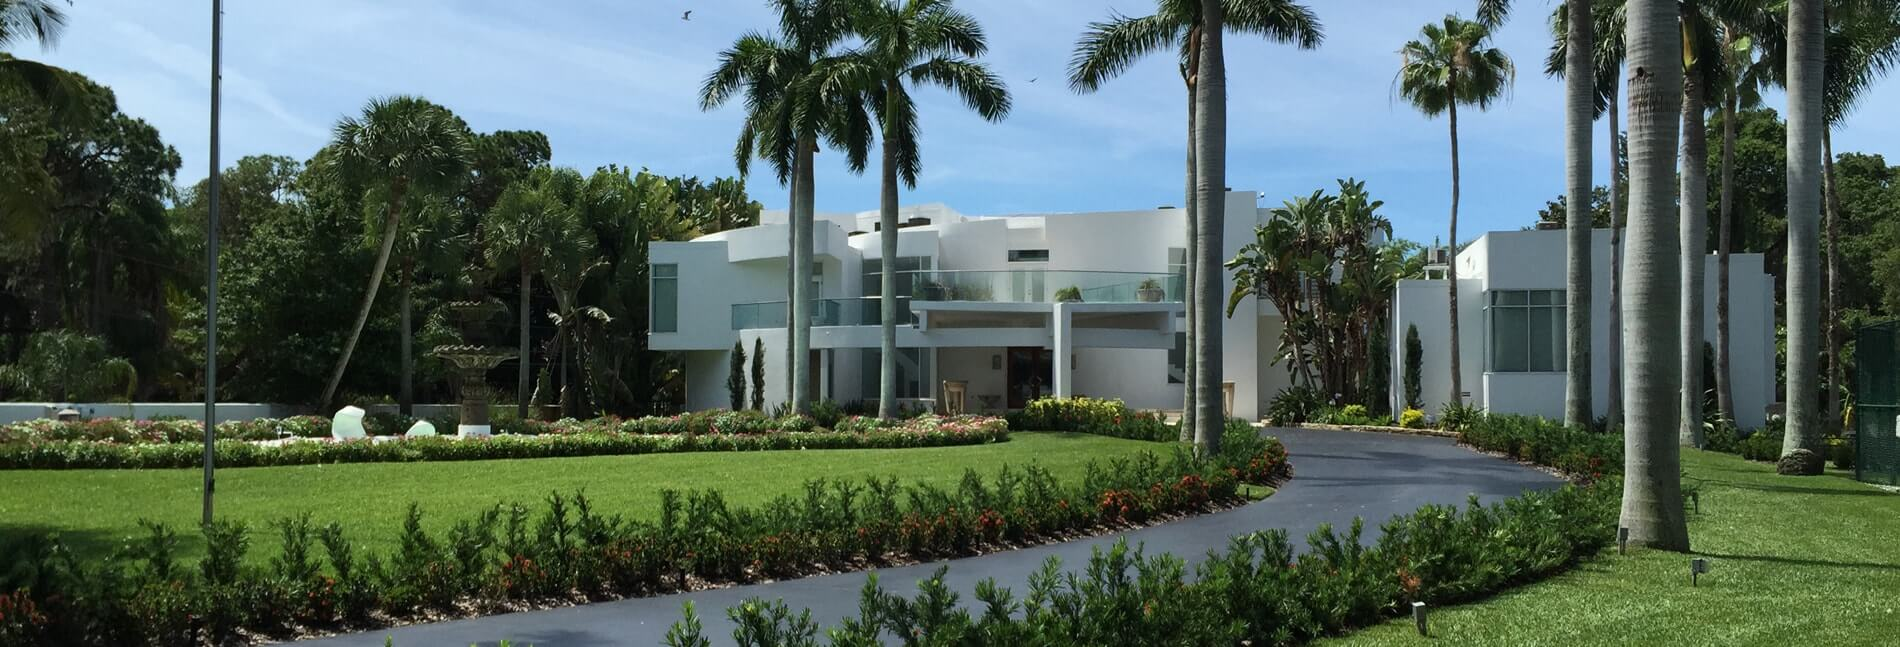 big white house with a palm trees and heathy fertilized lawn in st petesrburg fl